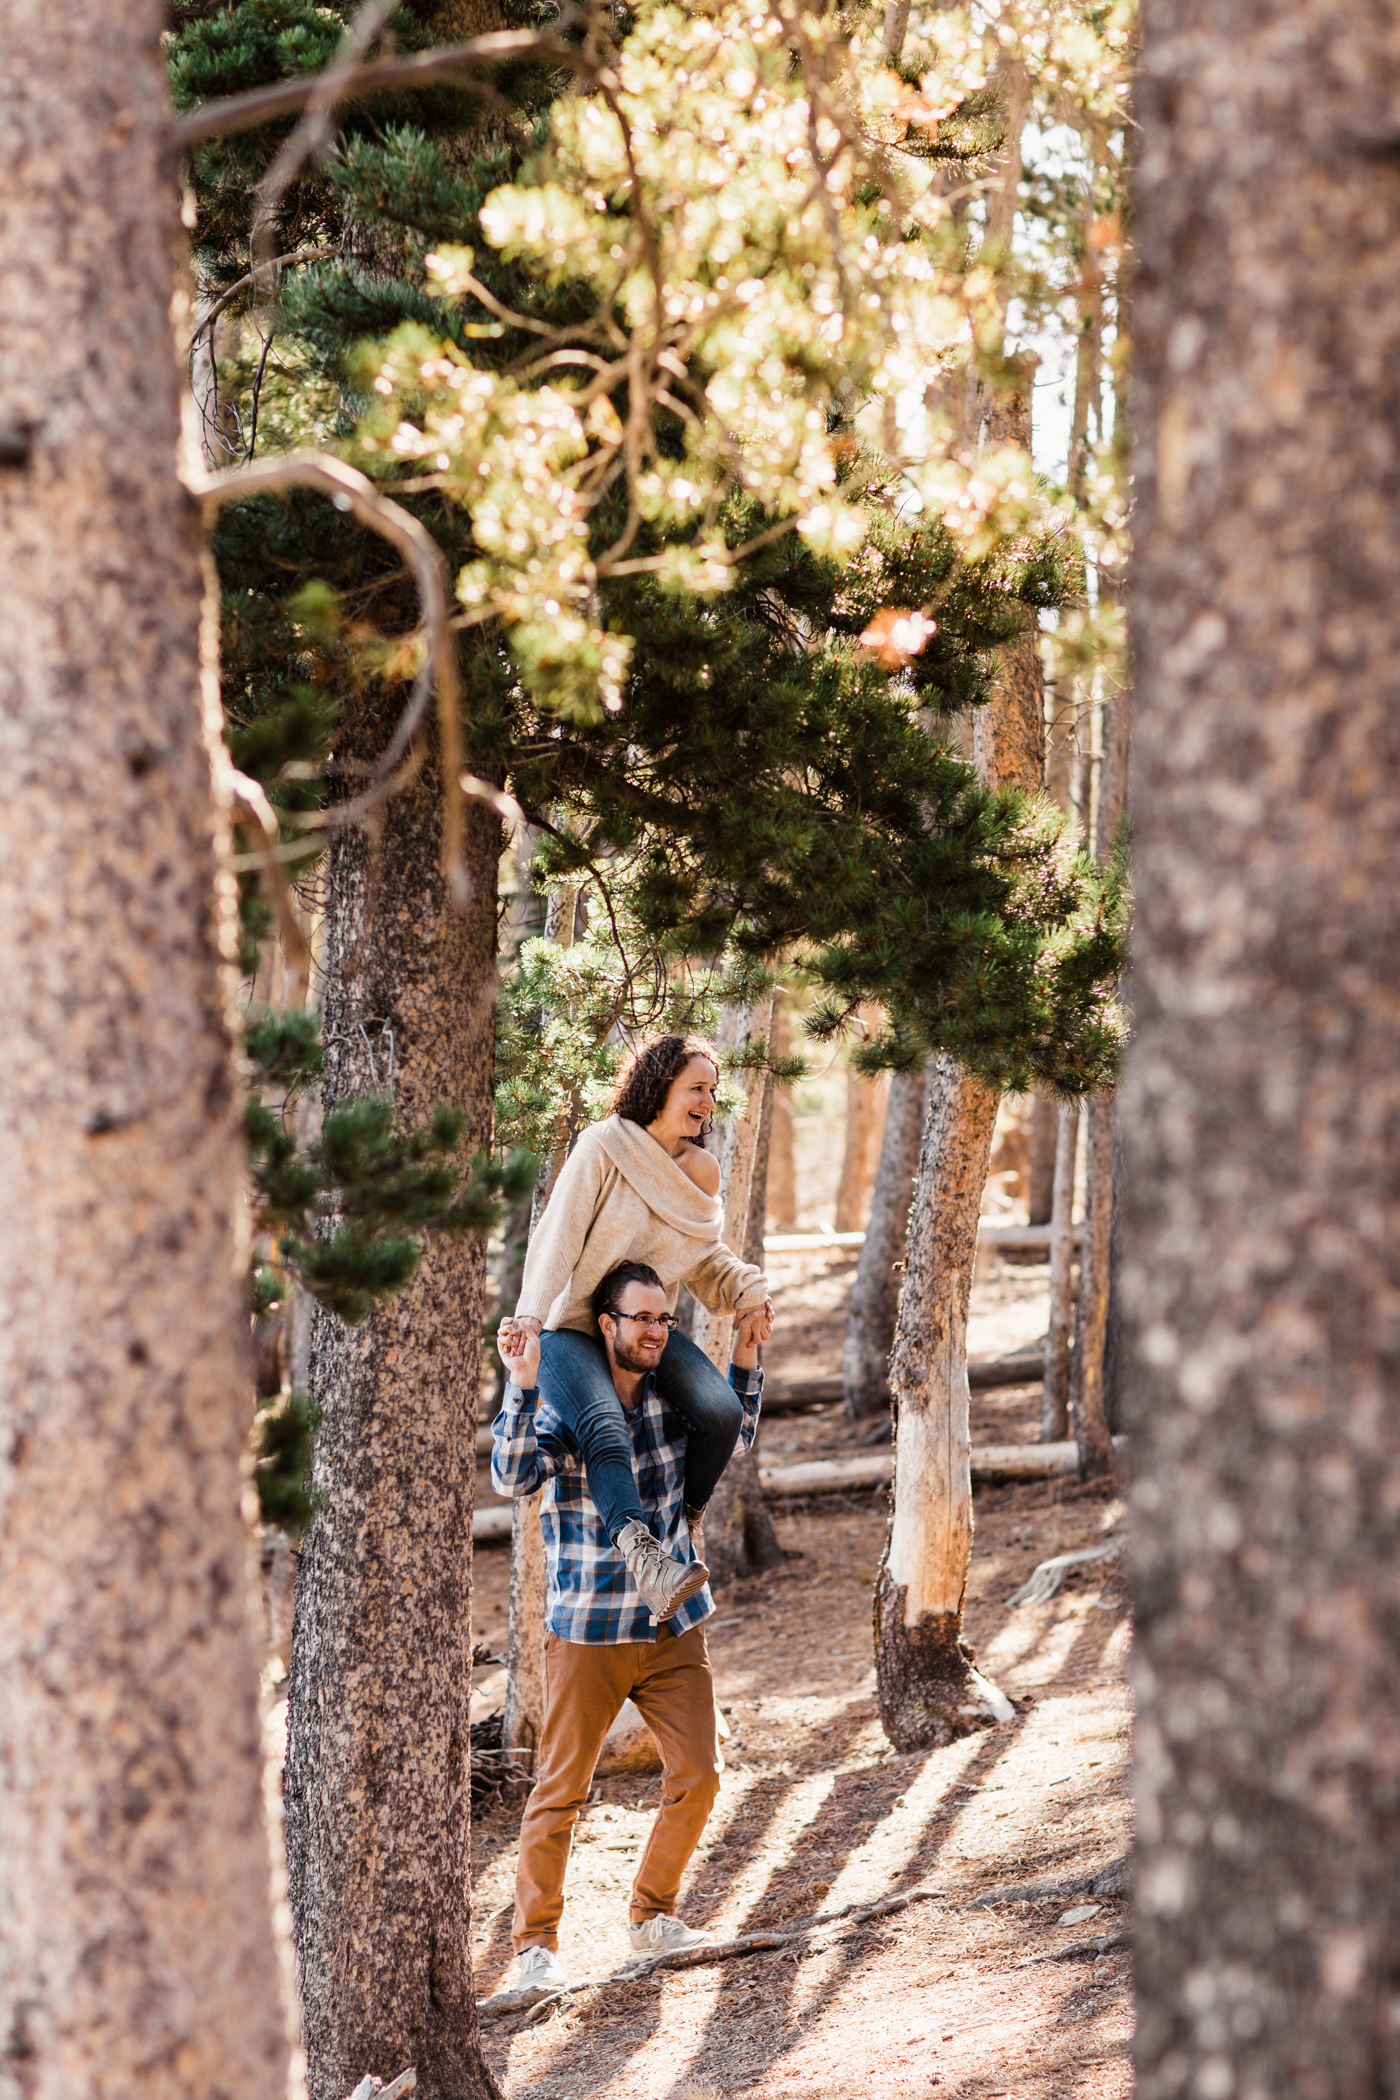 sunrise engagement session near Sprague Lake in Rocky Mountain National Park | mountain elopement photographers based in Colorado